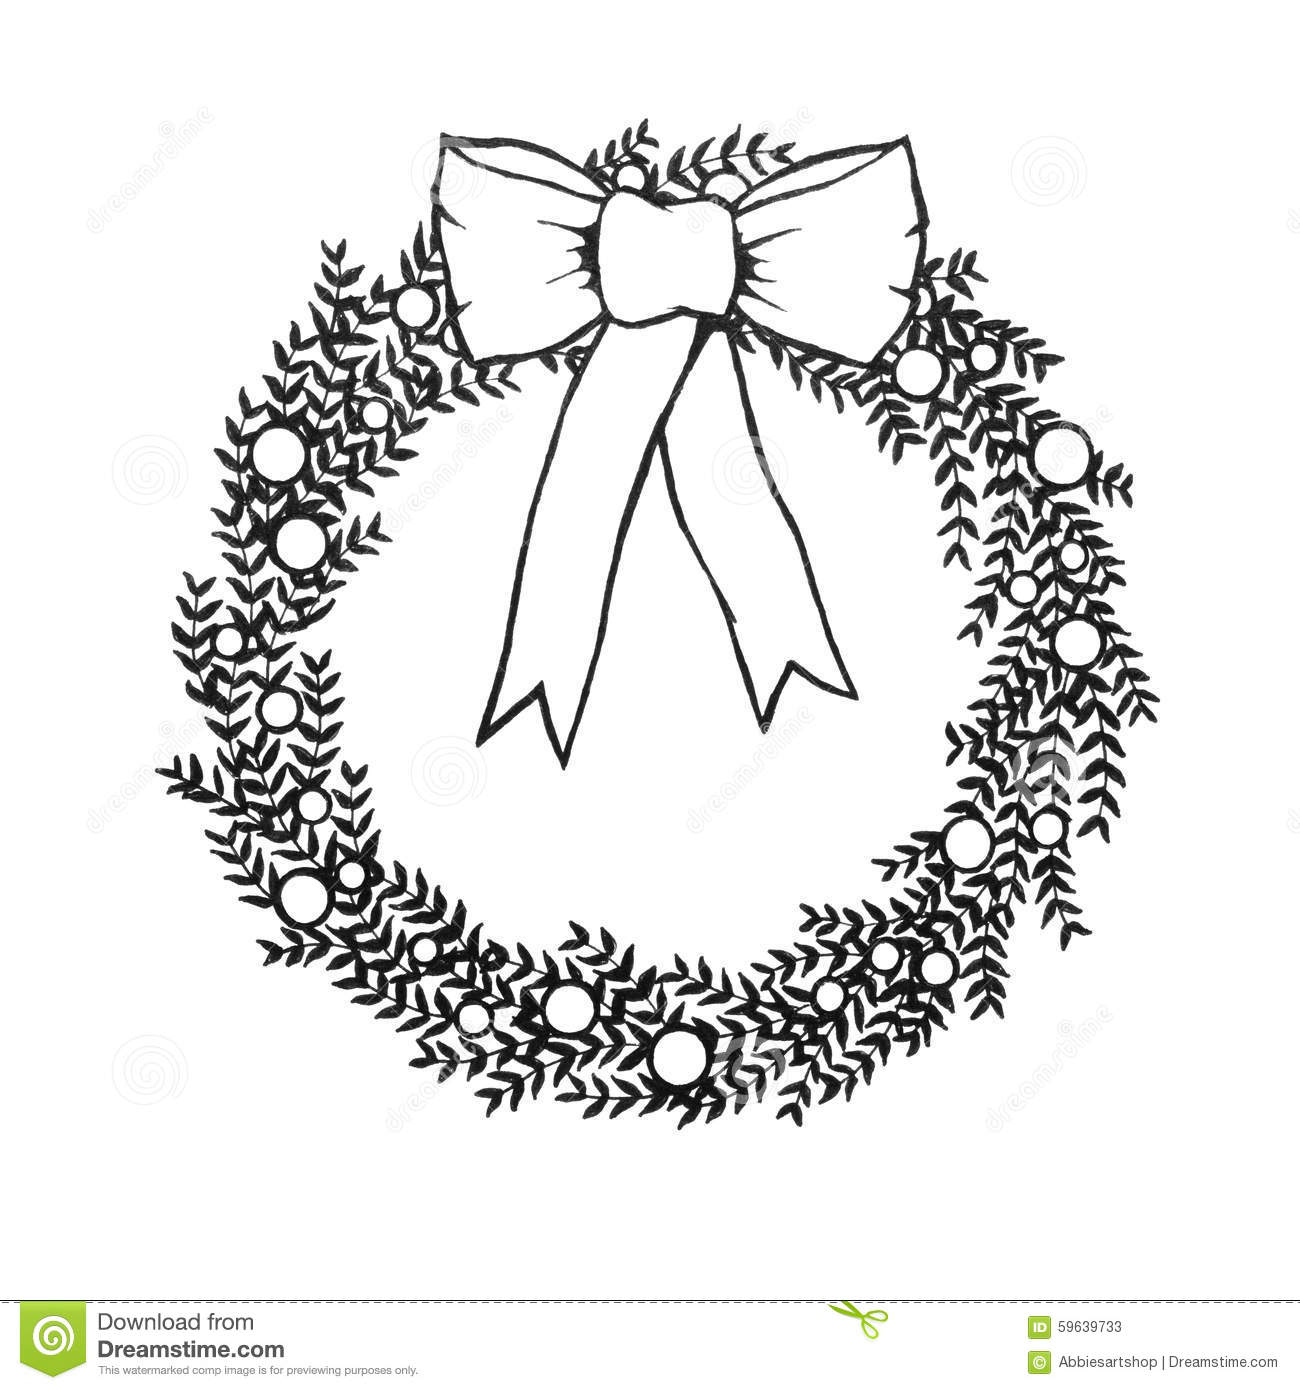 Christmas wreath clipart black and white 2 » Clipart Station.